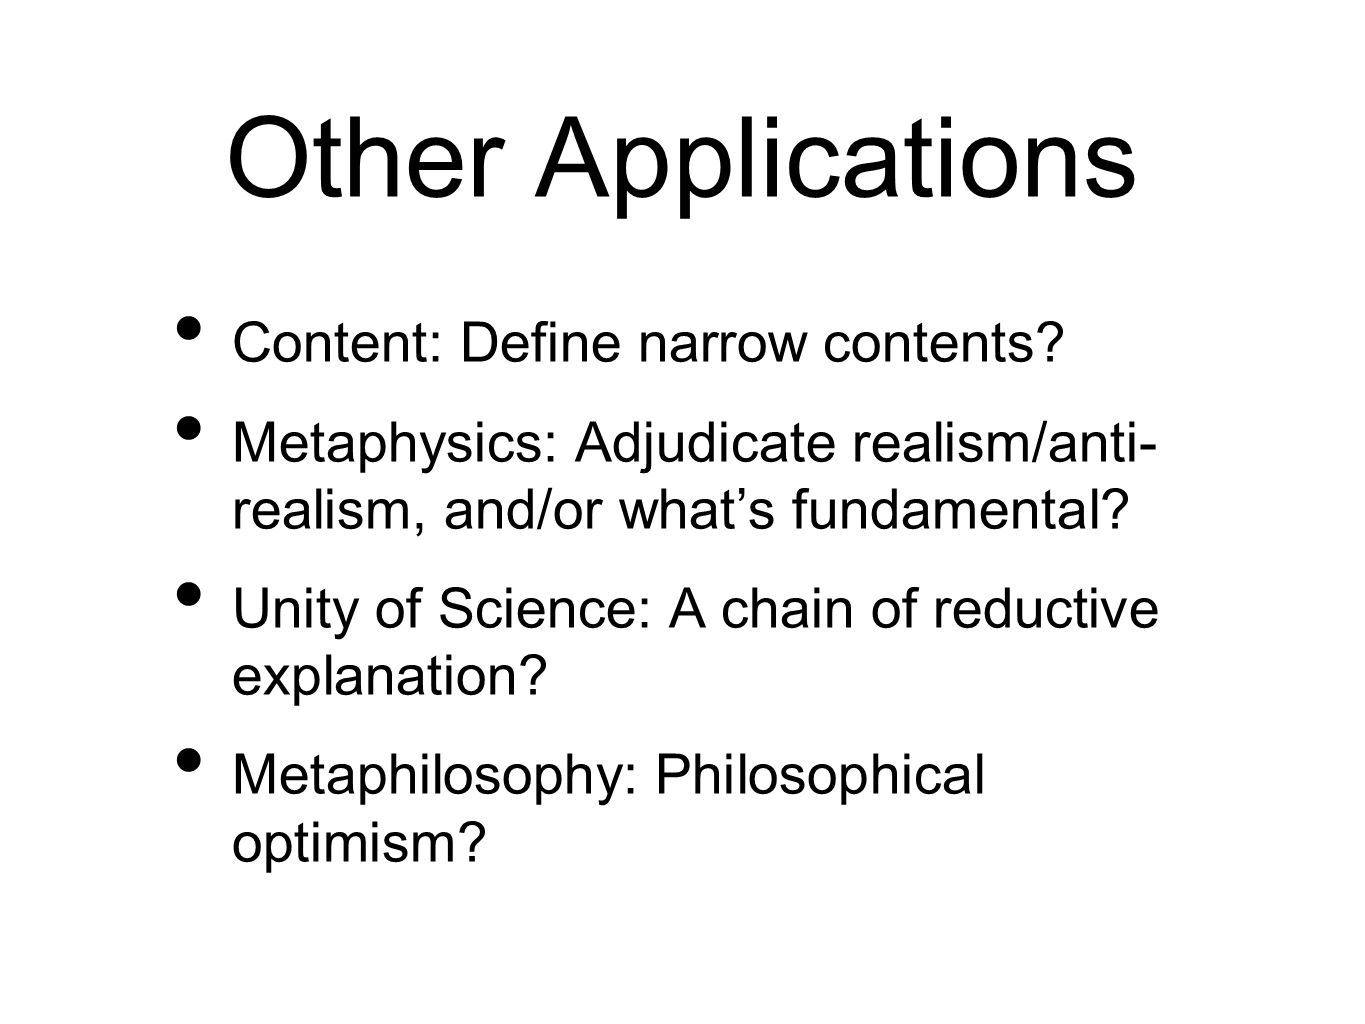 Other Applications Content: Define narrow contents? Metaphysics: Adjudicate realism/anti- realism, and/or whats fundamental? Unity of Science: A chain